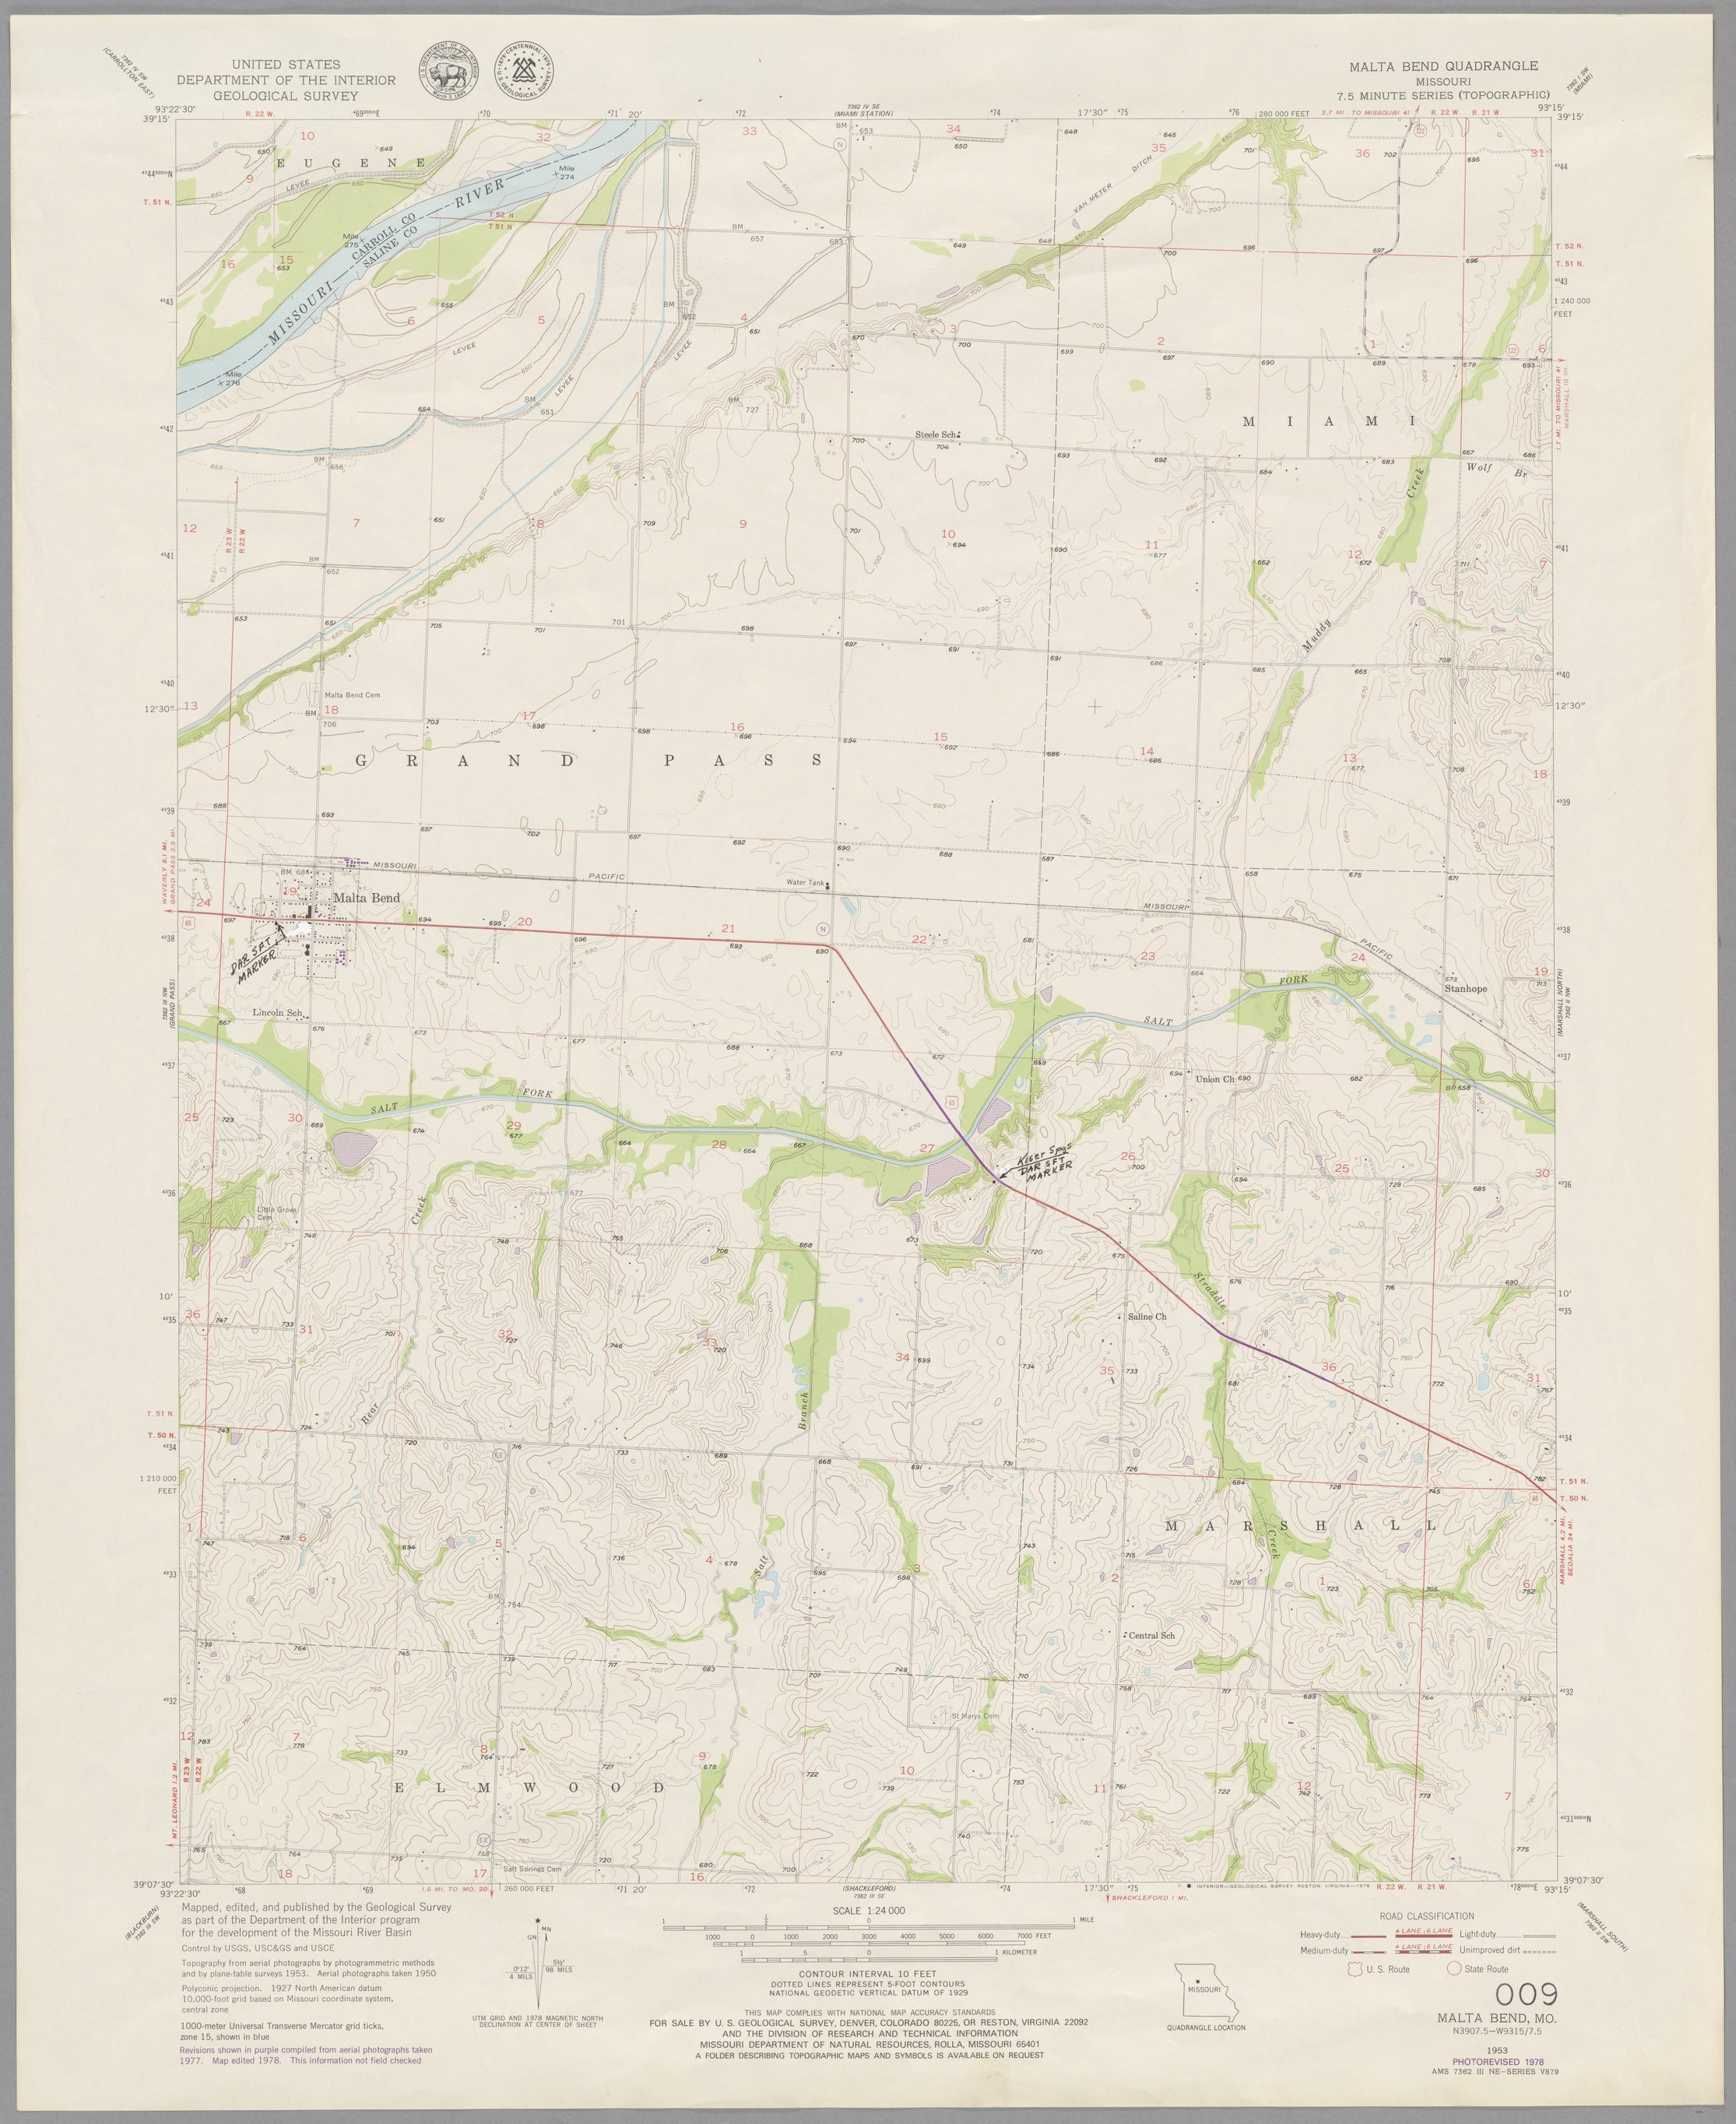 Kroh Collection. Group 1: Santa Fe Trail - Map 009: Malta Bend quadrangle, showing the early (1820s-1840s) route of the Santa Fe Trail in Missouri